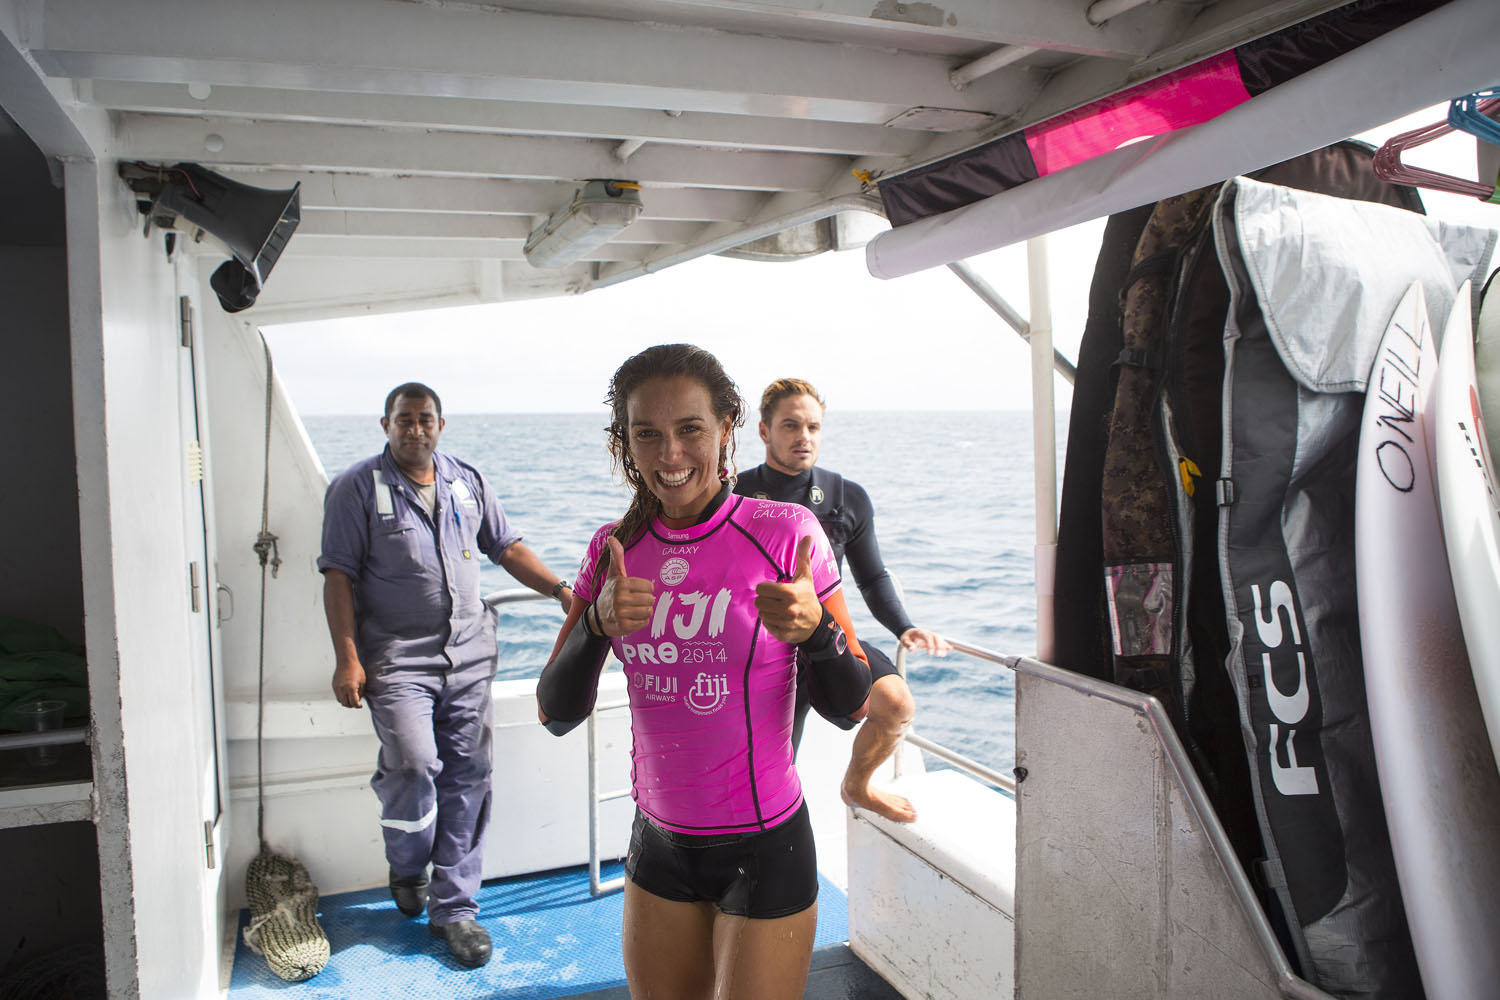 After a solid victory in Round 1 of the Women's Fiji Pro, Fitzgibbons gives a thumbs up to photographer Kirstin Scholtz on May 27, 2014 in Tavarua, Fiji.